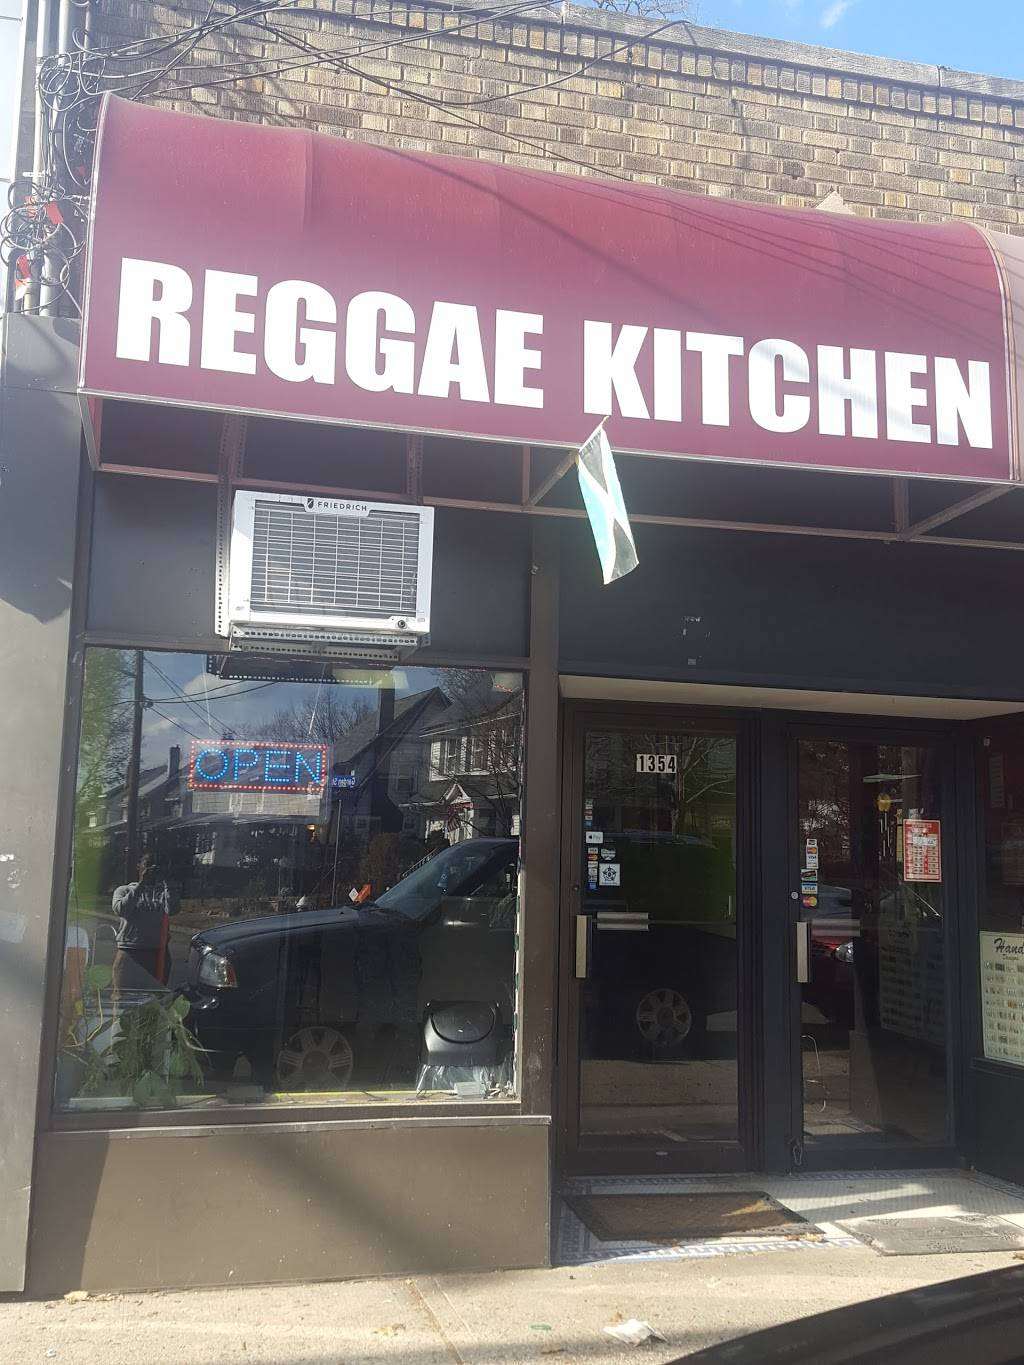 Reggae Kitchen | restaurant | 1354 Teaneck Rd, Teaneck, NJ 07666, USA | 2013575777 OR +1 201-357-5777